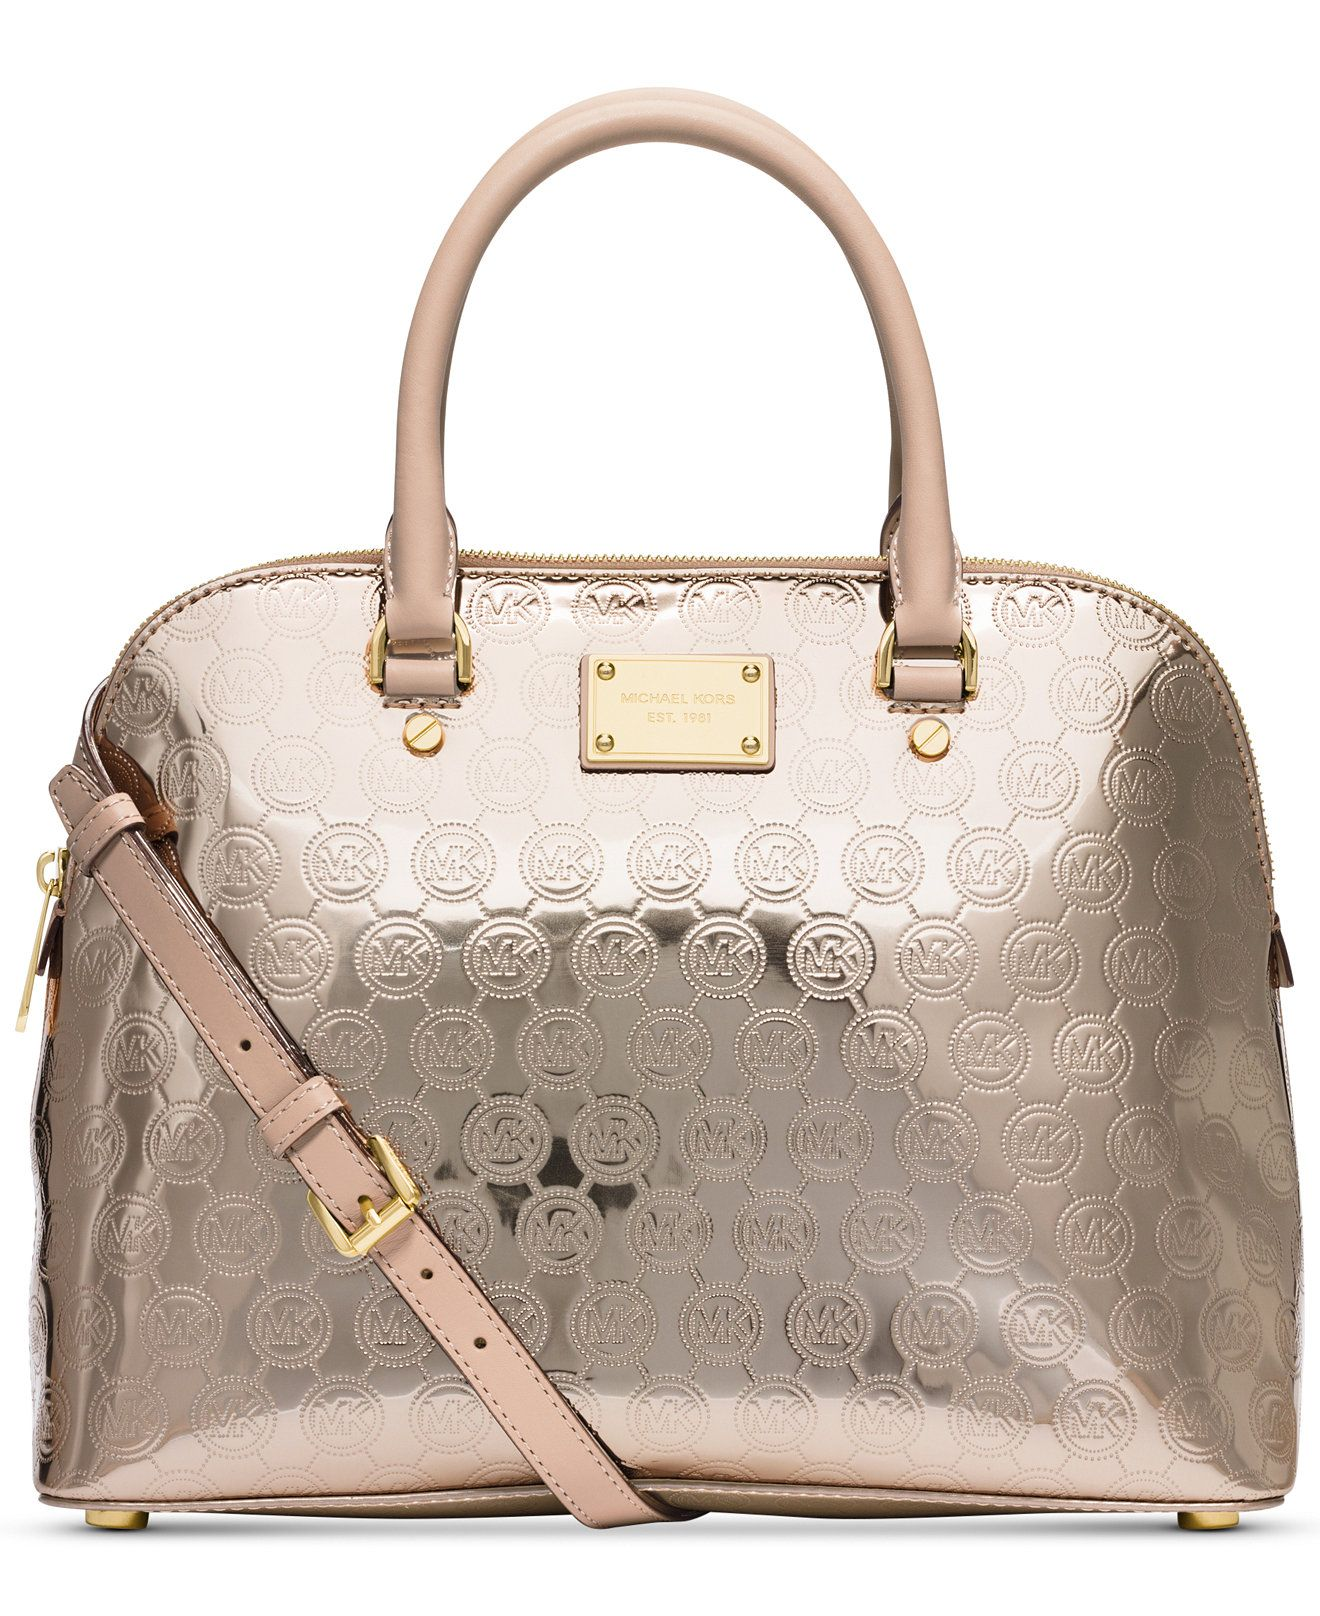 MICHAEL Michael Kors Cindy Large Dome Signature Satchel - MICHAEL Michael  Kors - Handbags \u0026 Accessories